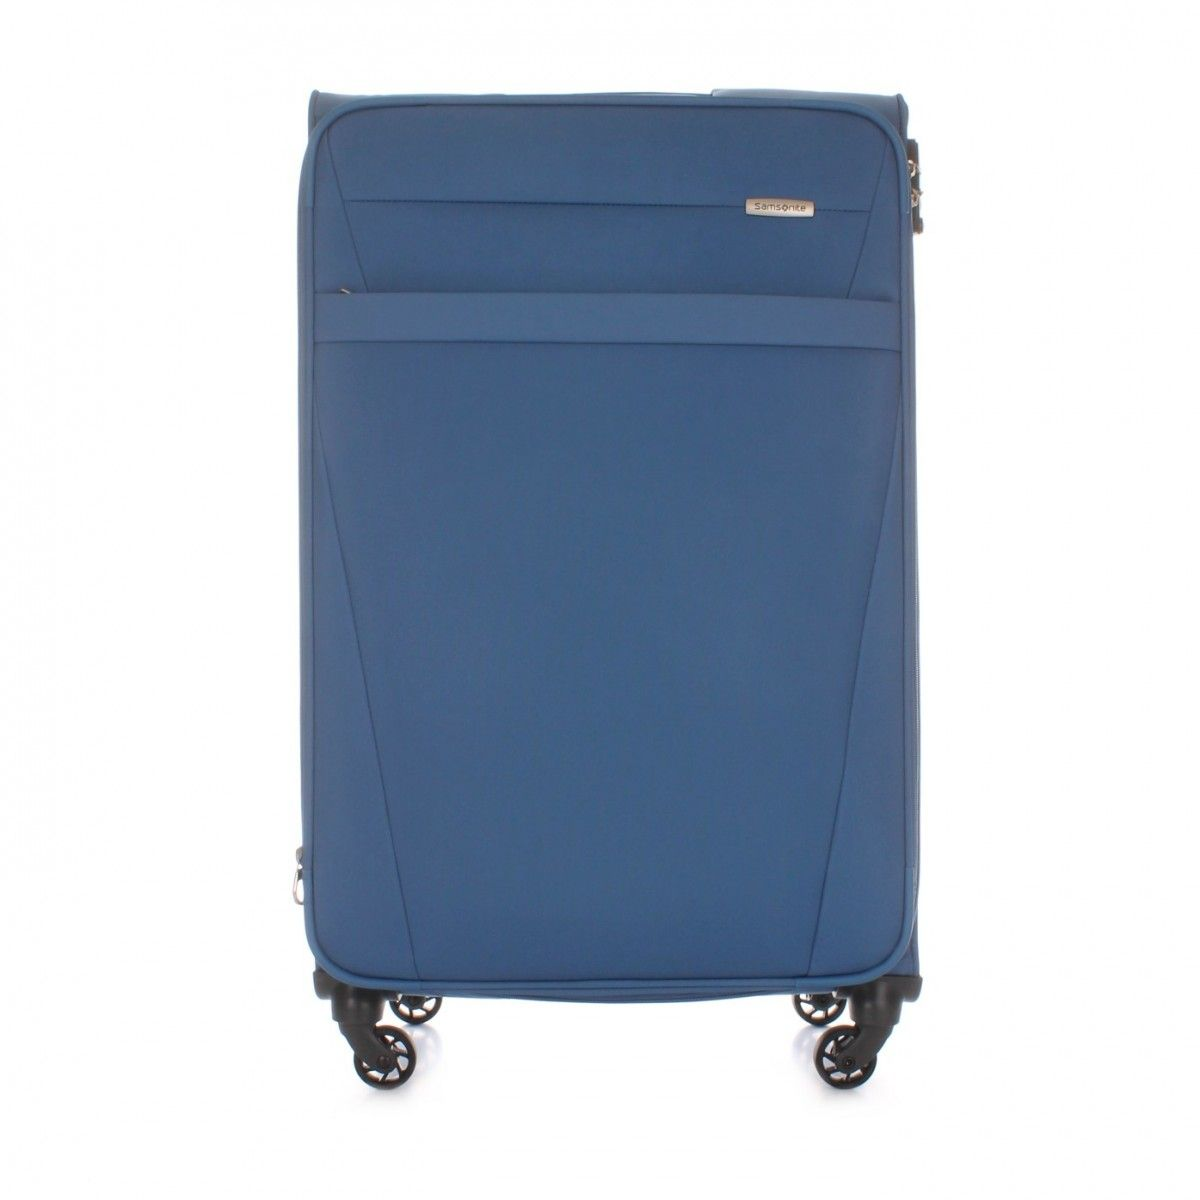 Samsonite - Ncs auva spinner gra 011 mirage blue 76D.906